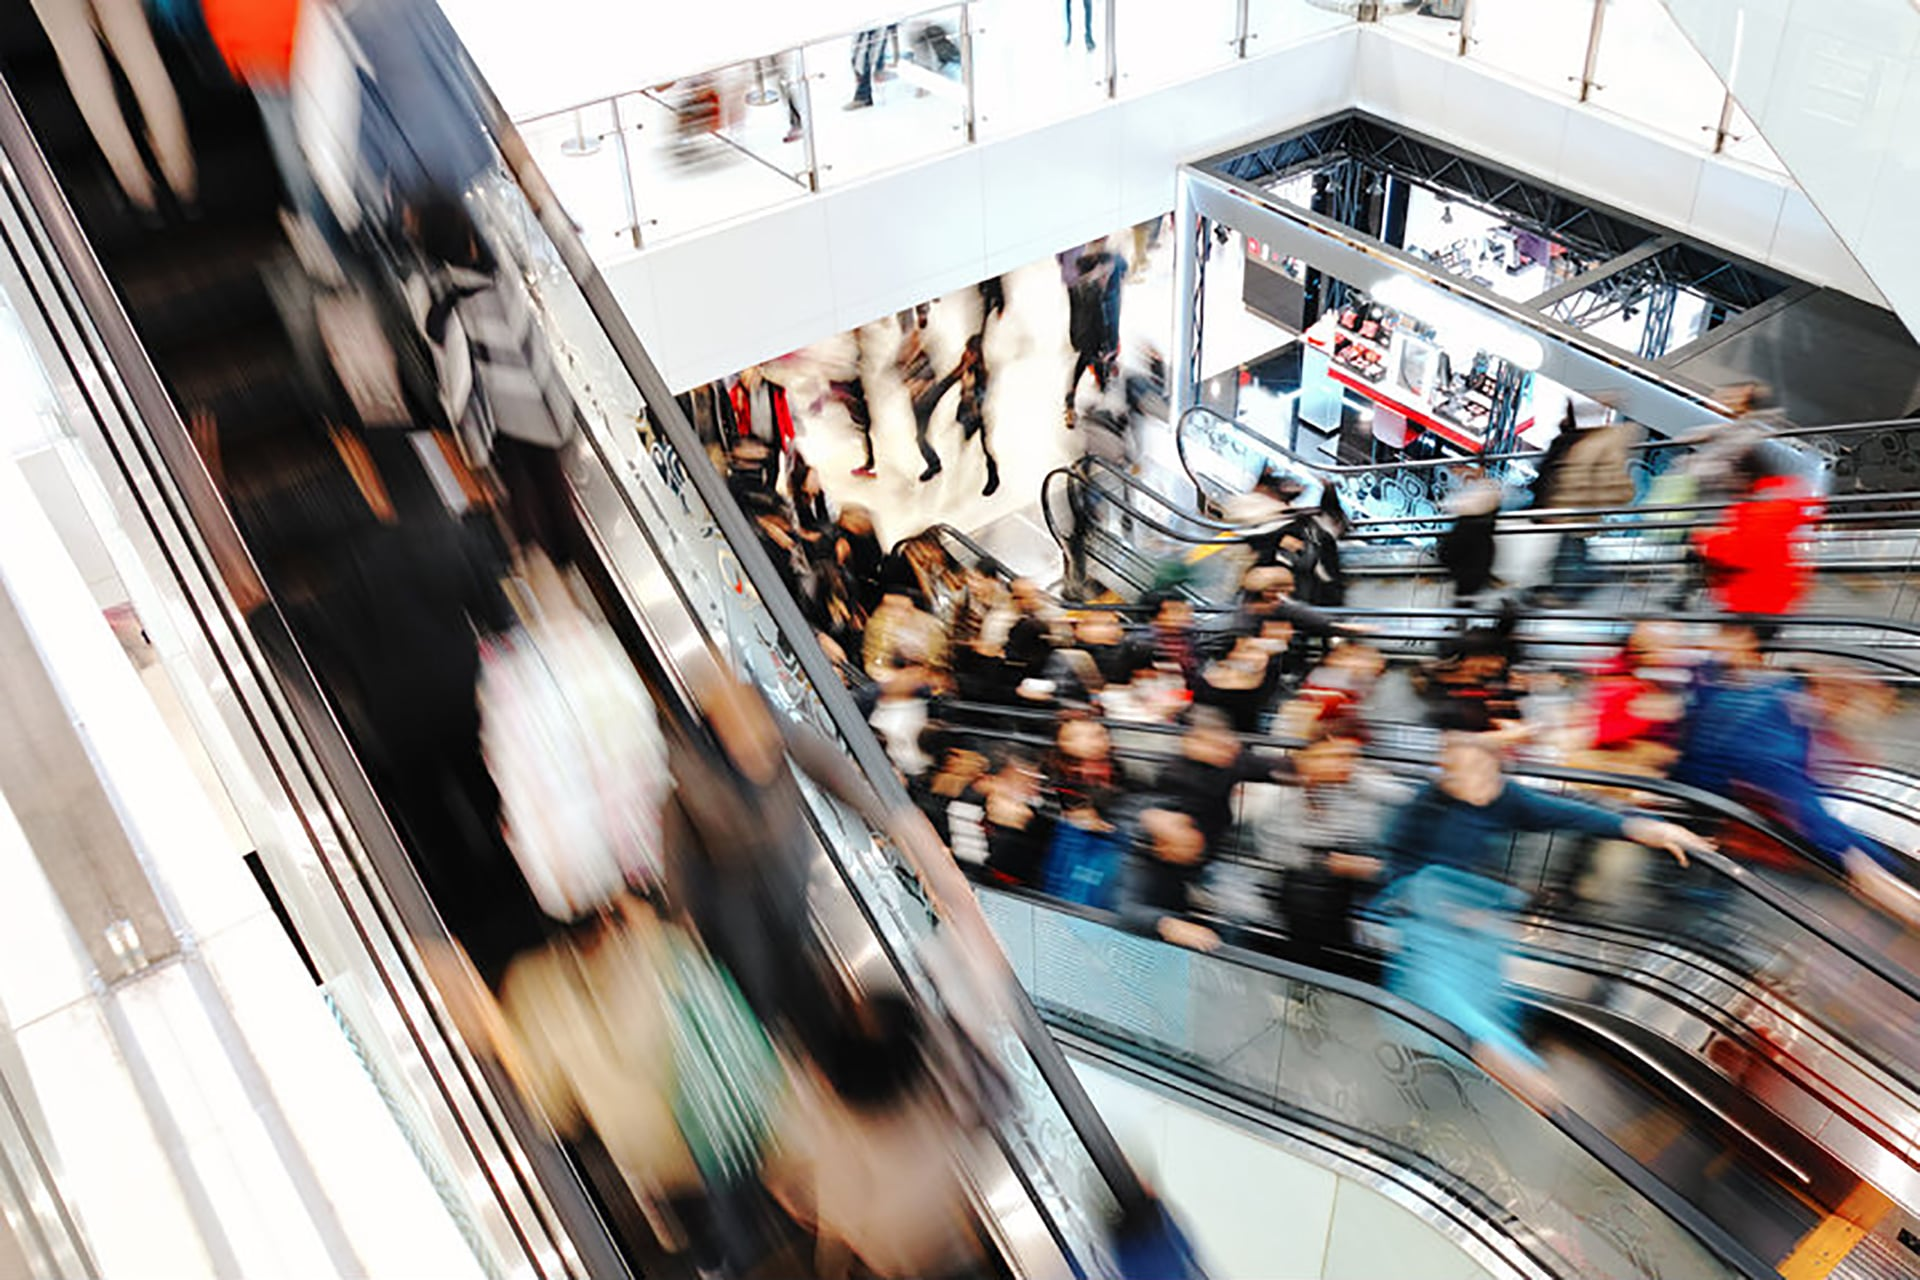 People rushing past on an escalator in a shopping mall.